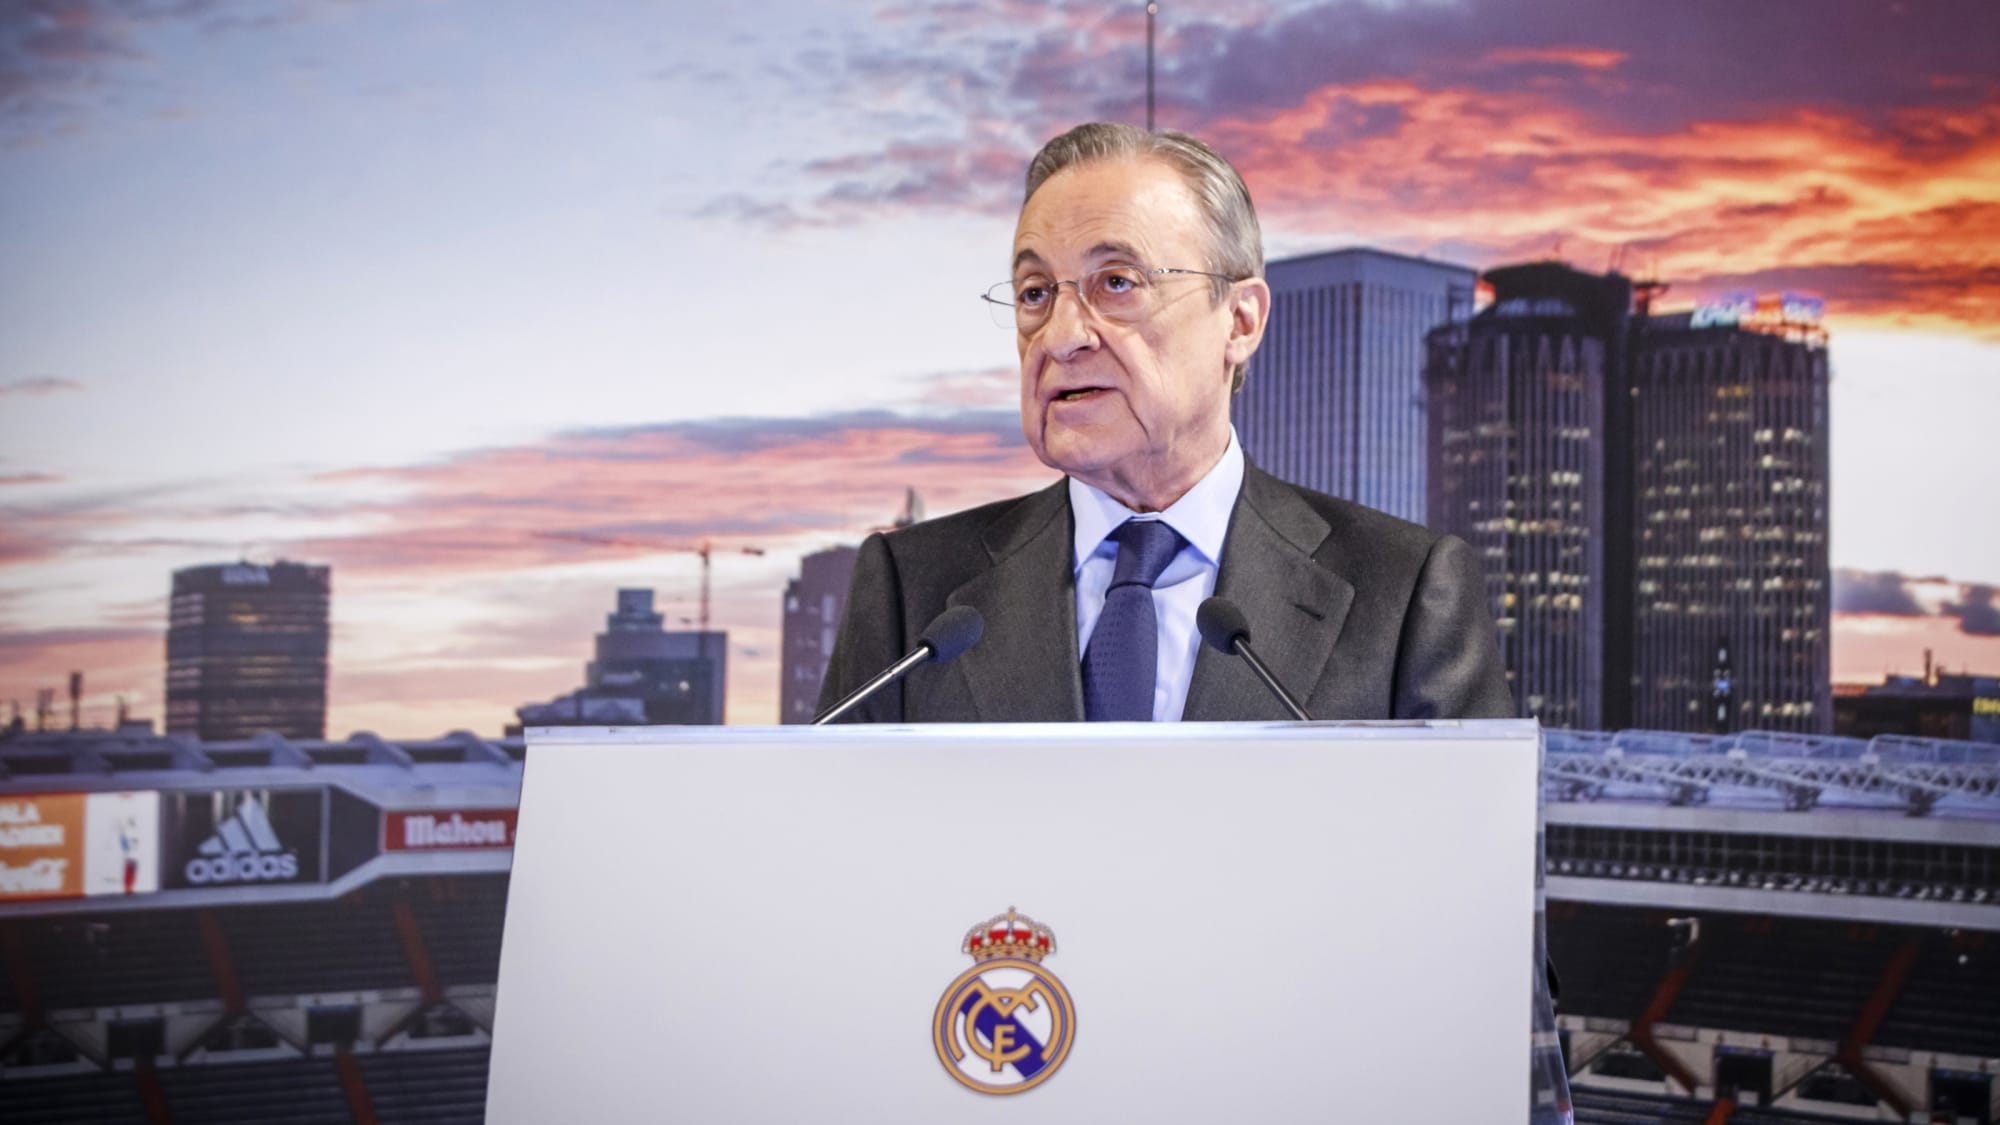 Real Madrid must have faith in what they are building